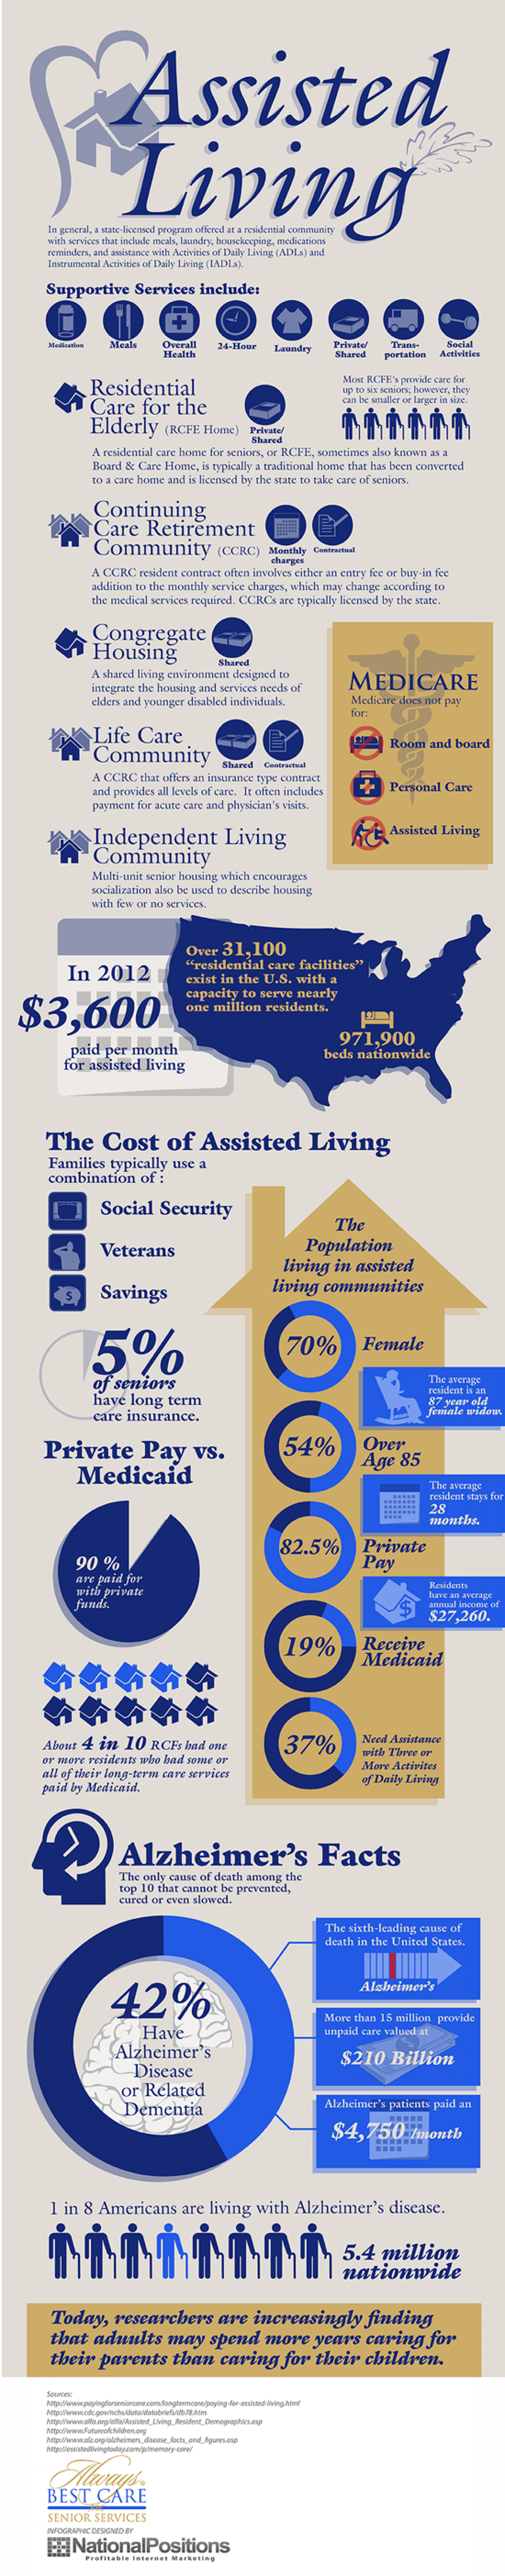 The Cost of Assisted Living Services Across America Infographic